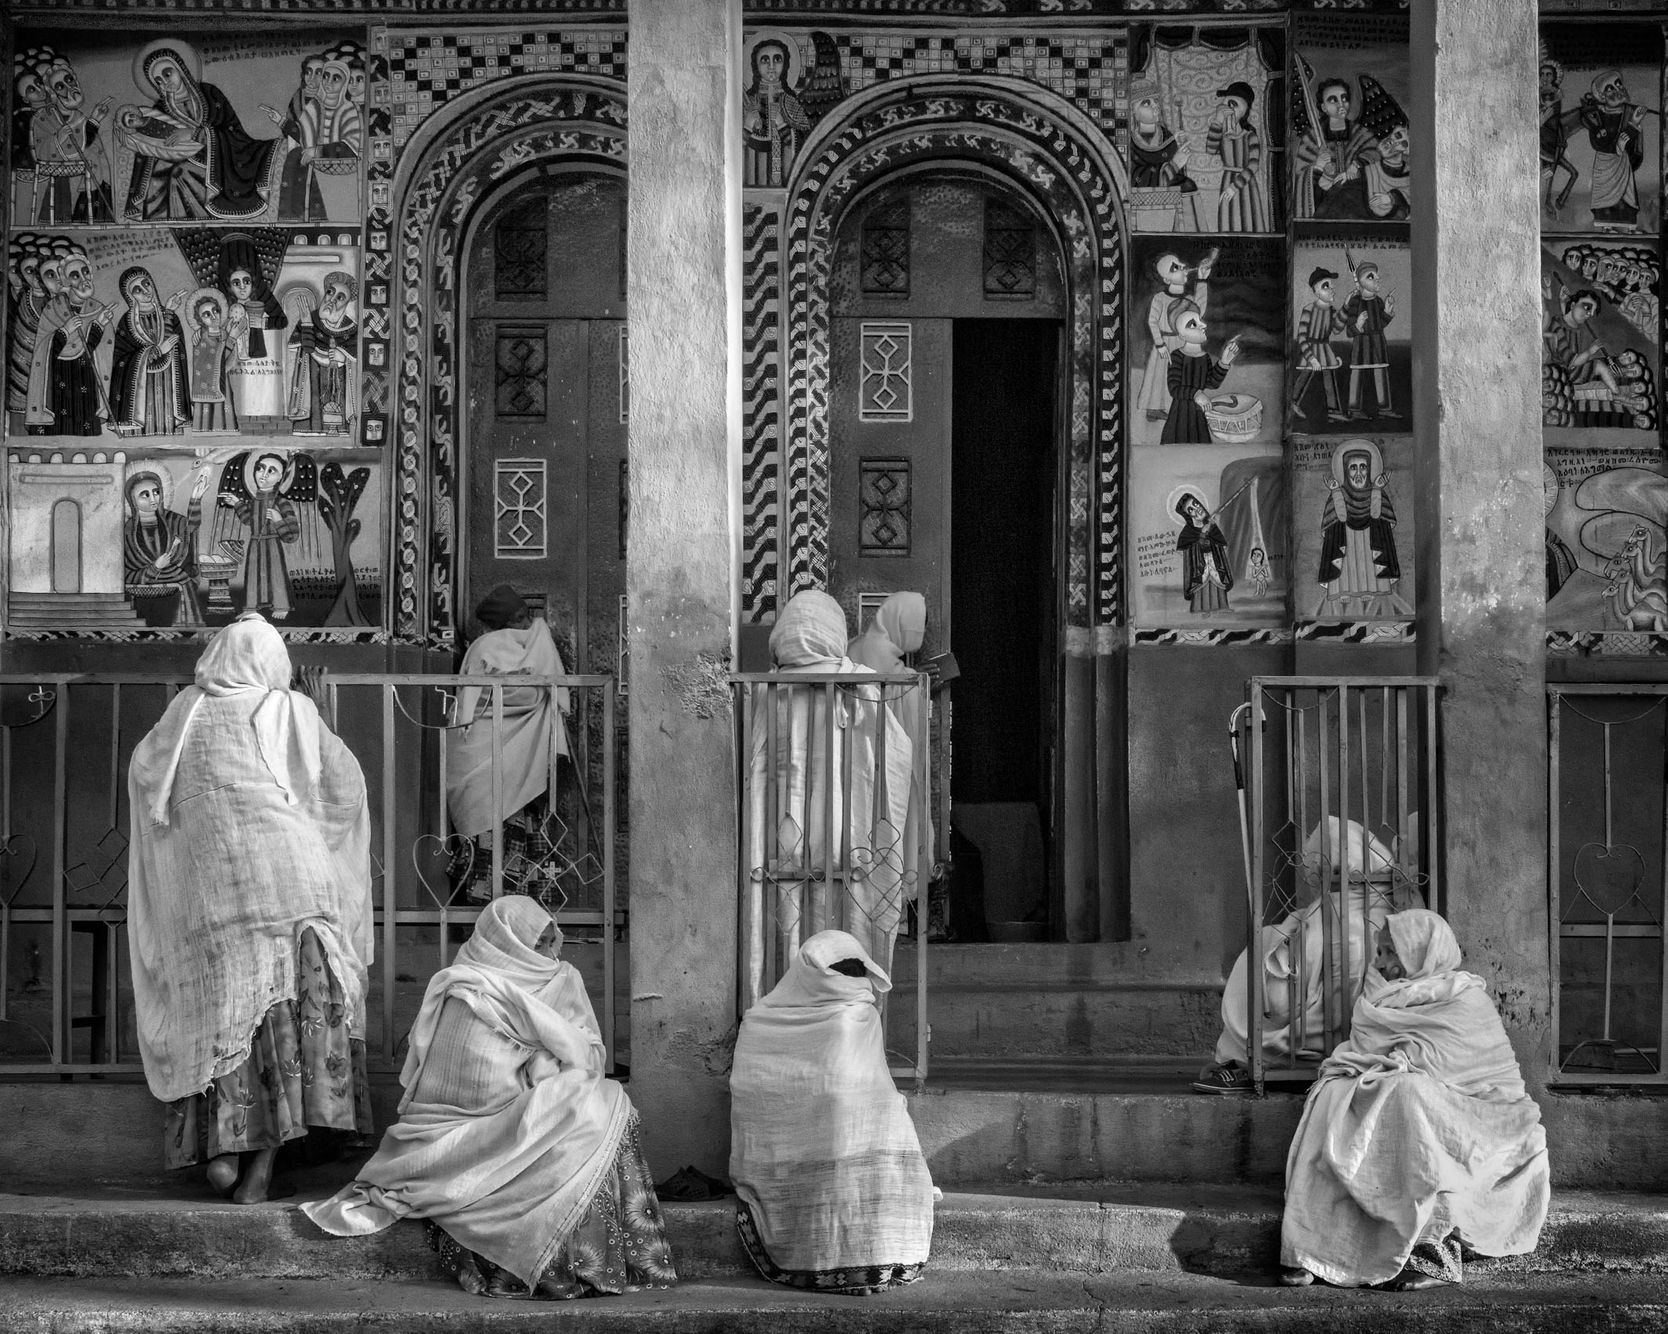 ETHIOPIA:  Children of Solomon and Sheba--The Ethiopian Orthodox Church